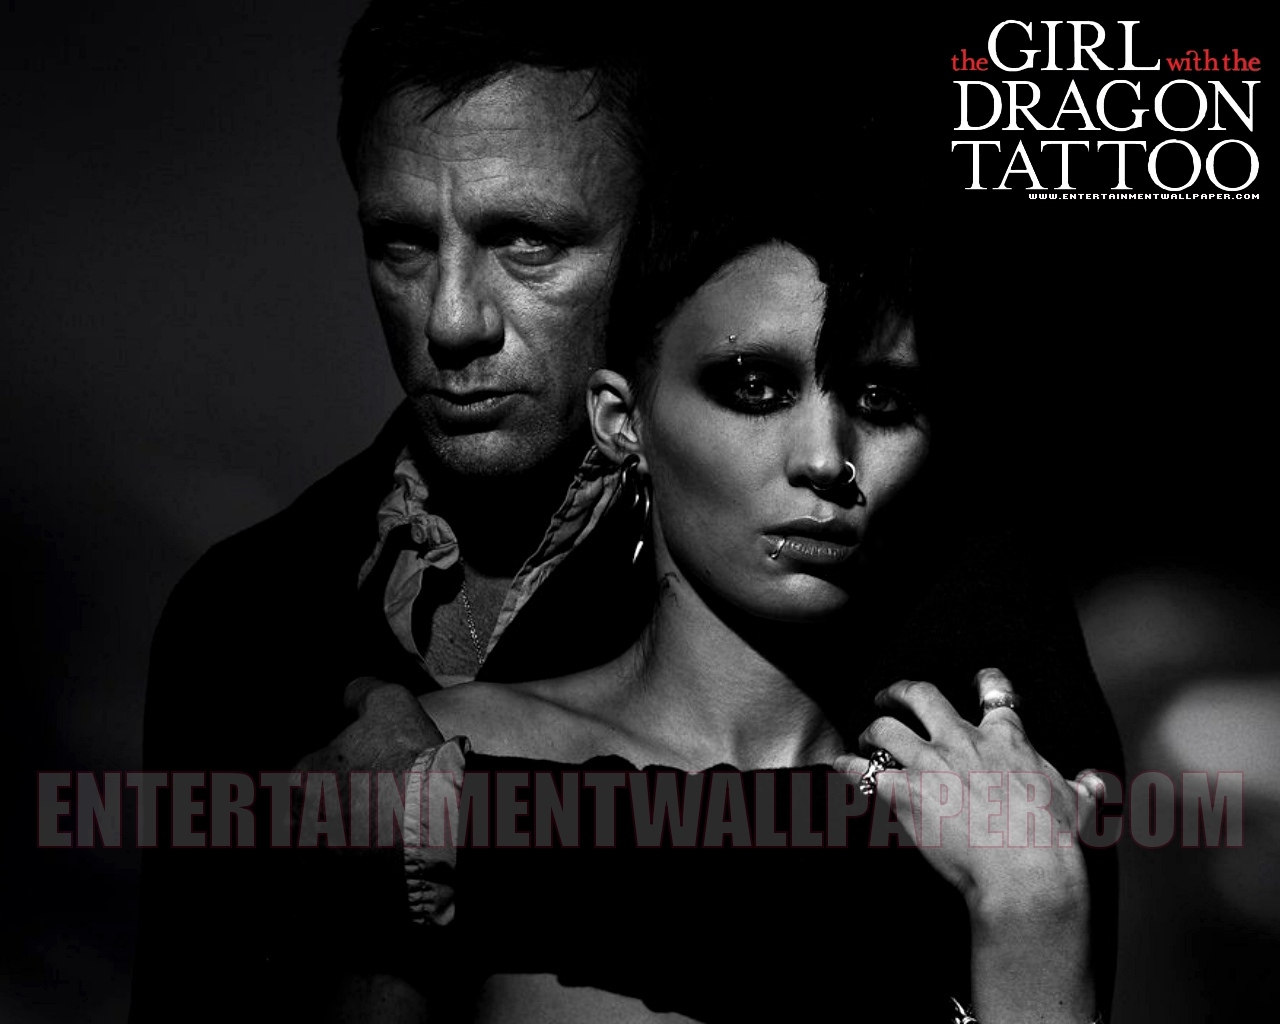 Movies books writers comics the girl with the dragon tattoo for Cast of girl with the dragon tattoo